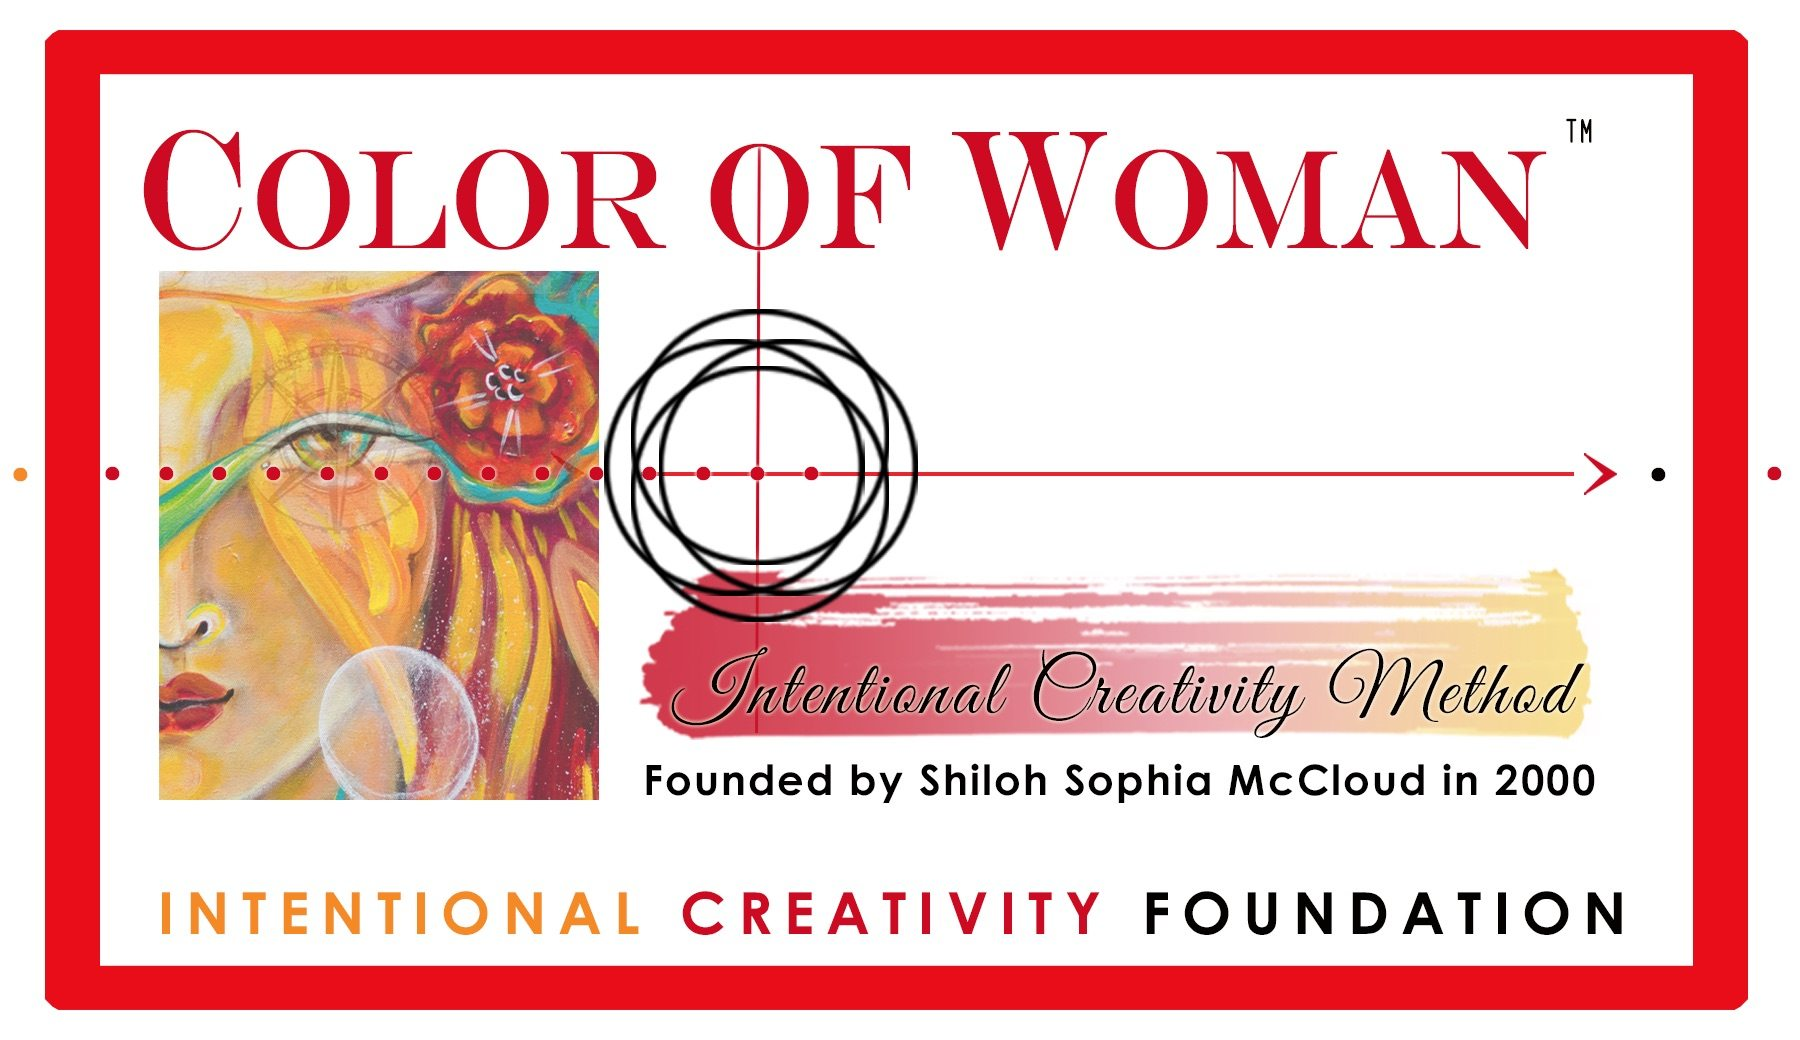 Color of Woman IC Method Rec.